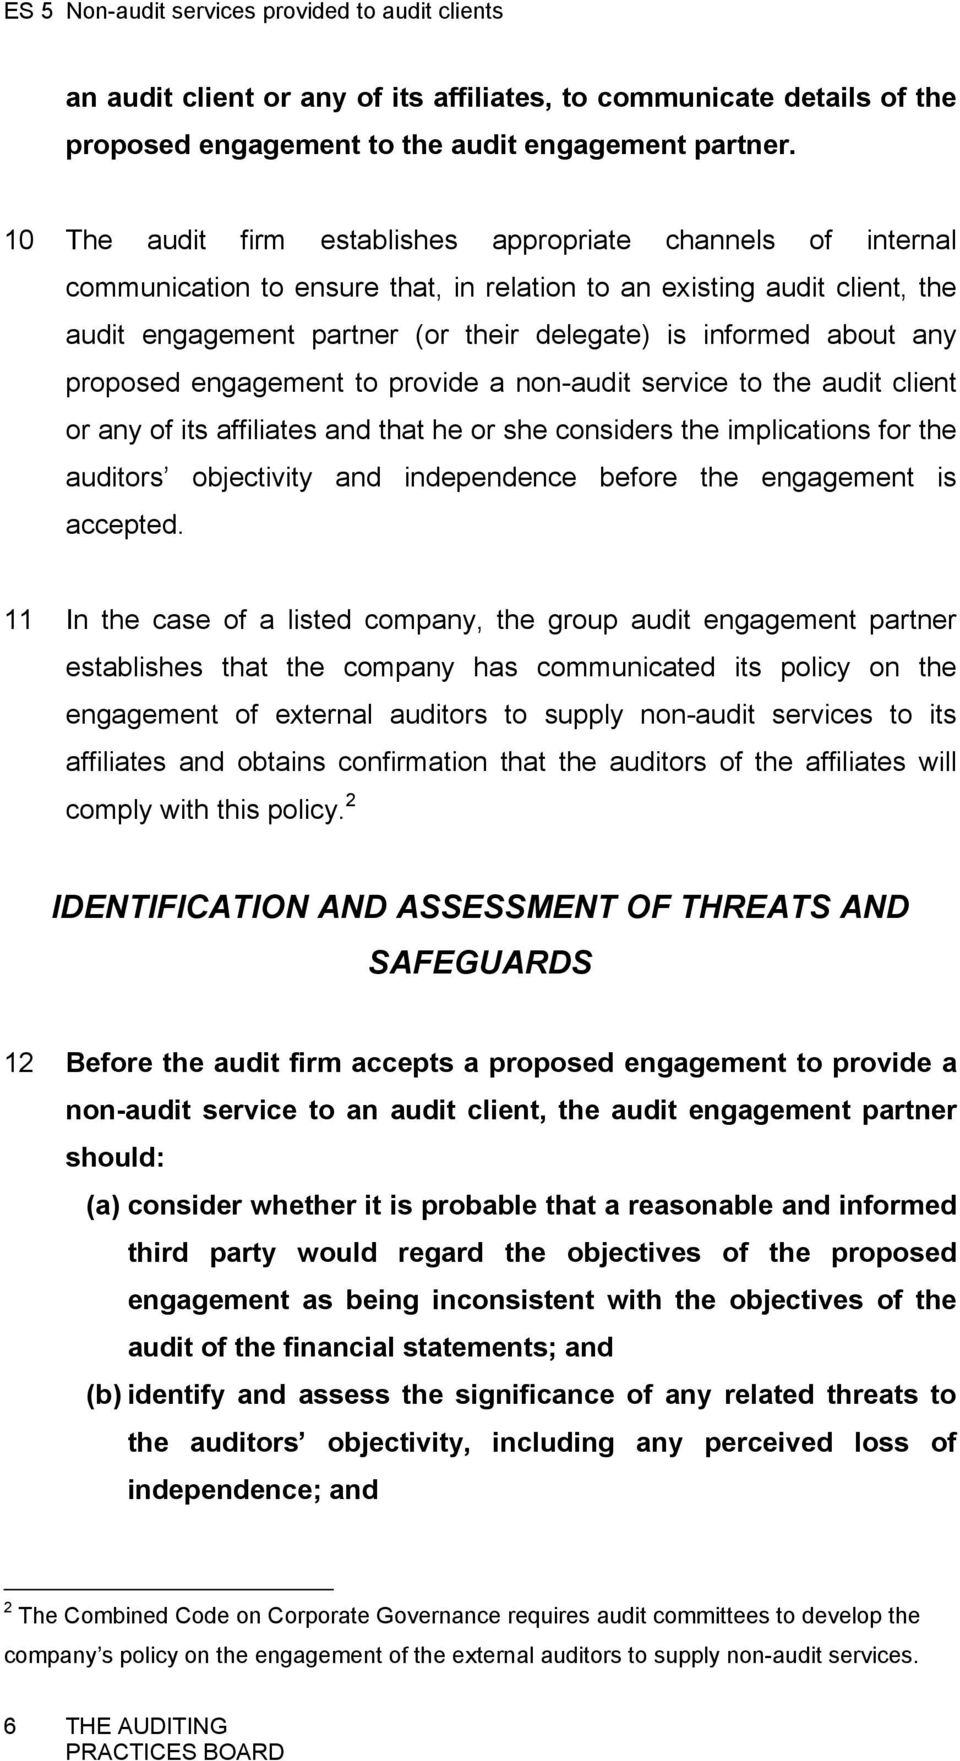 about any proposed engagement to provide a non-audit service to the audit client or any of its affiliates and that he or she considers the implications for the auditors objectivity and independence